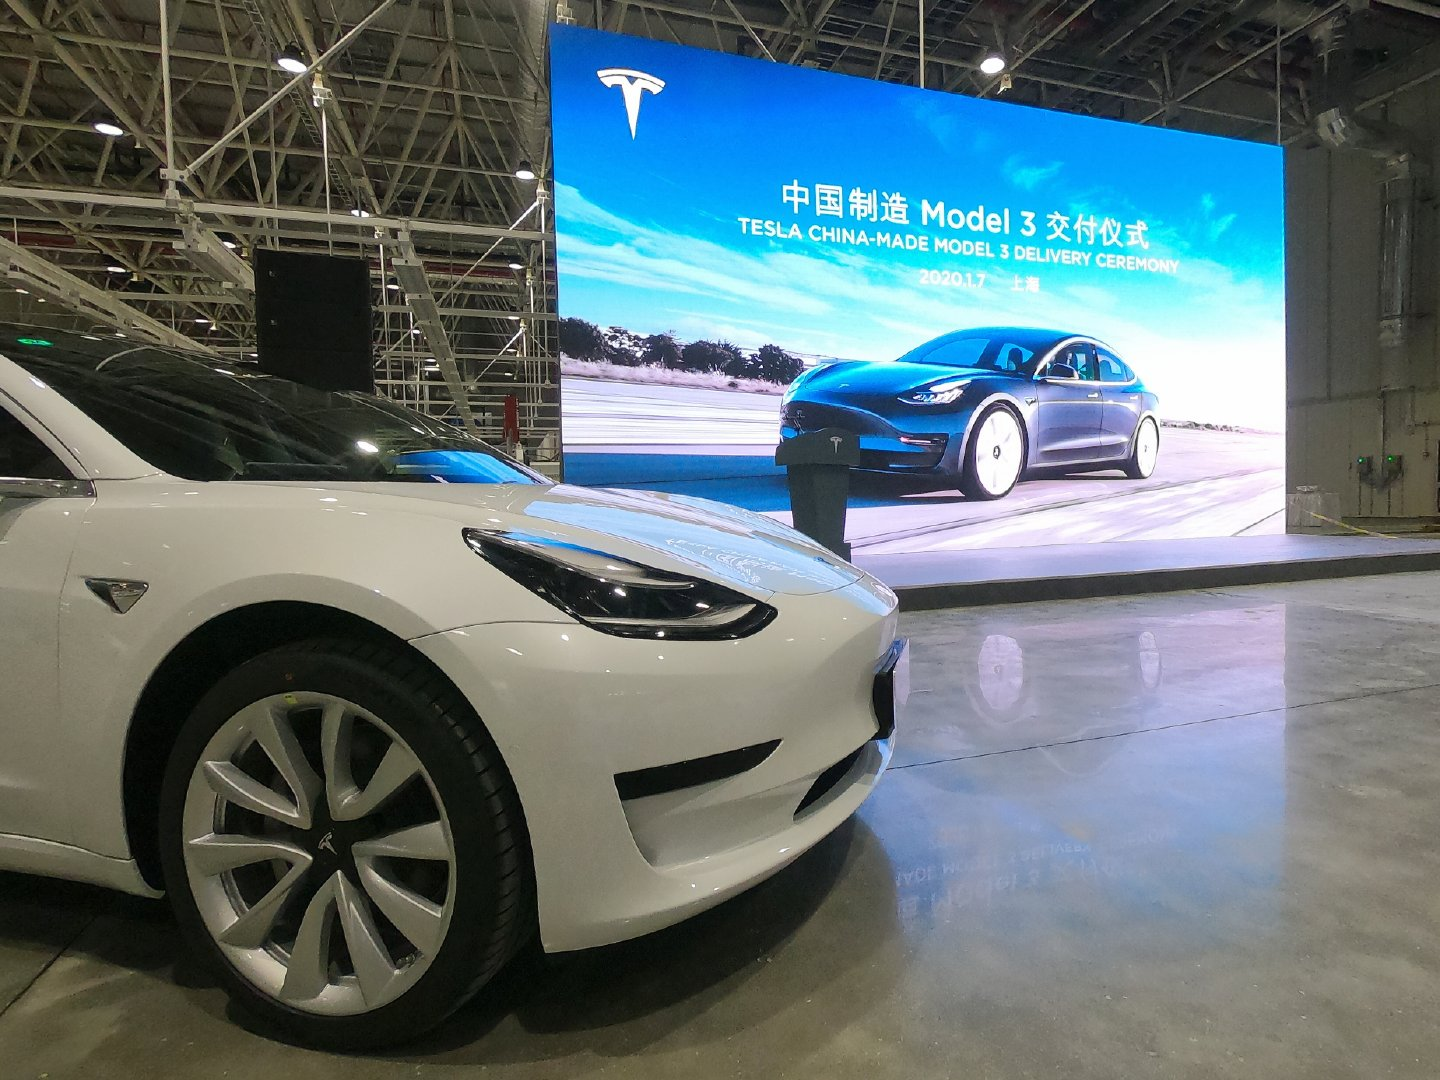 Tesla-China-Modell-3-Delivery-Event-Jan-7-4